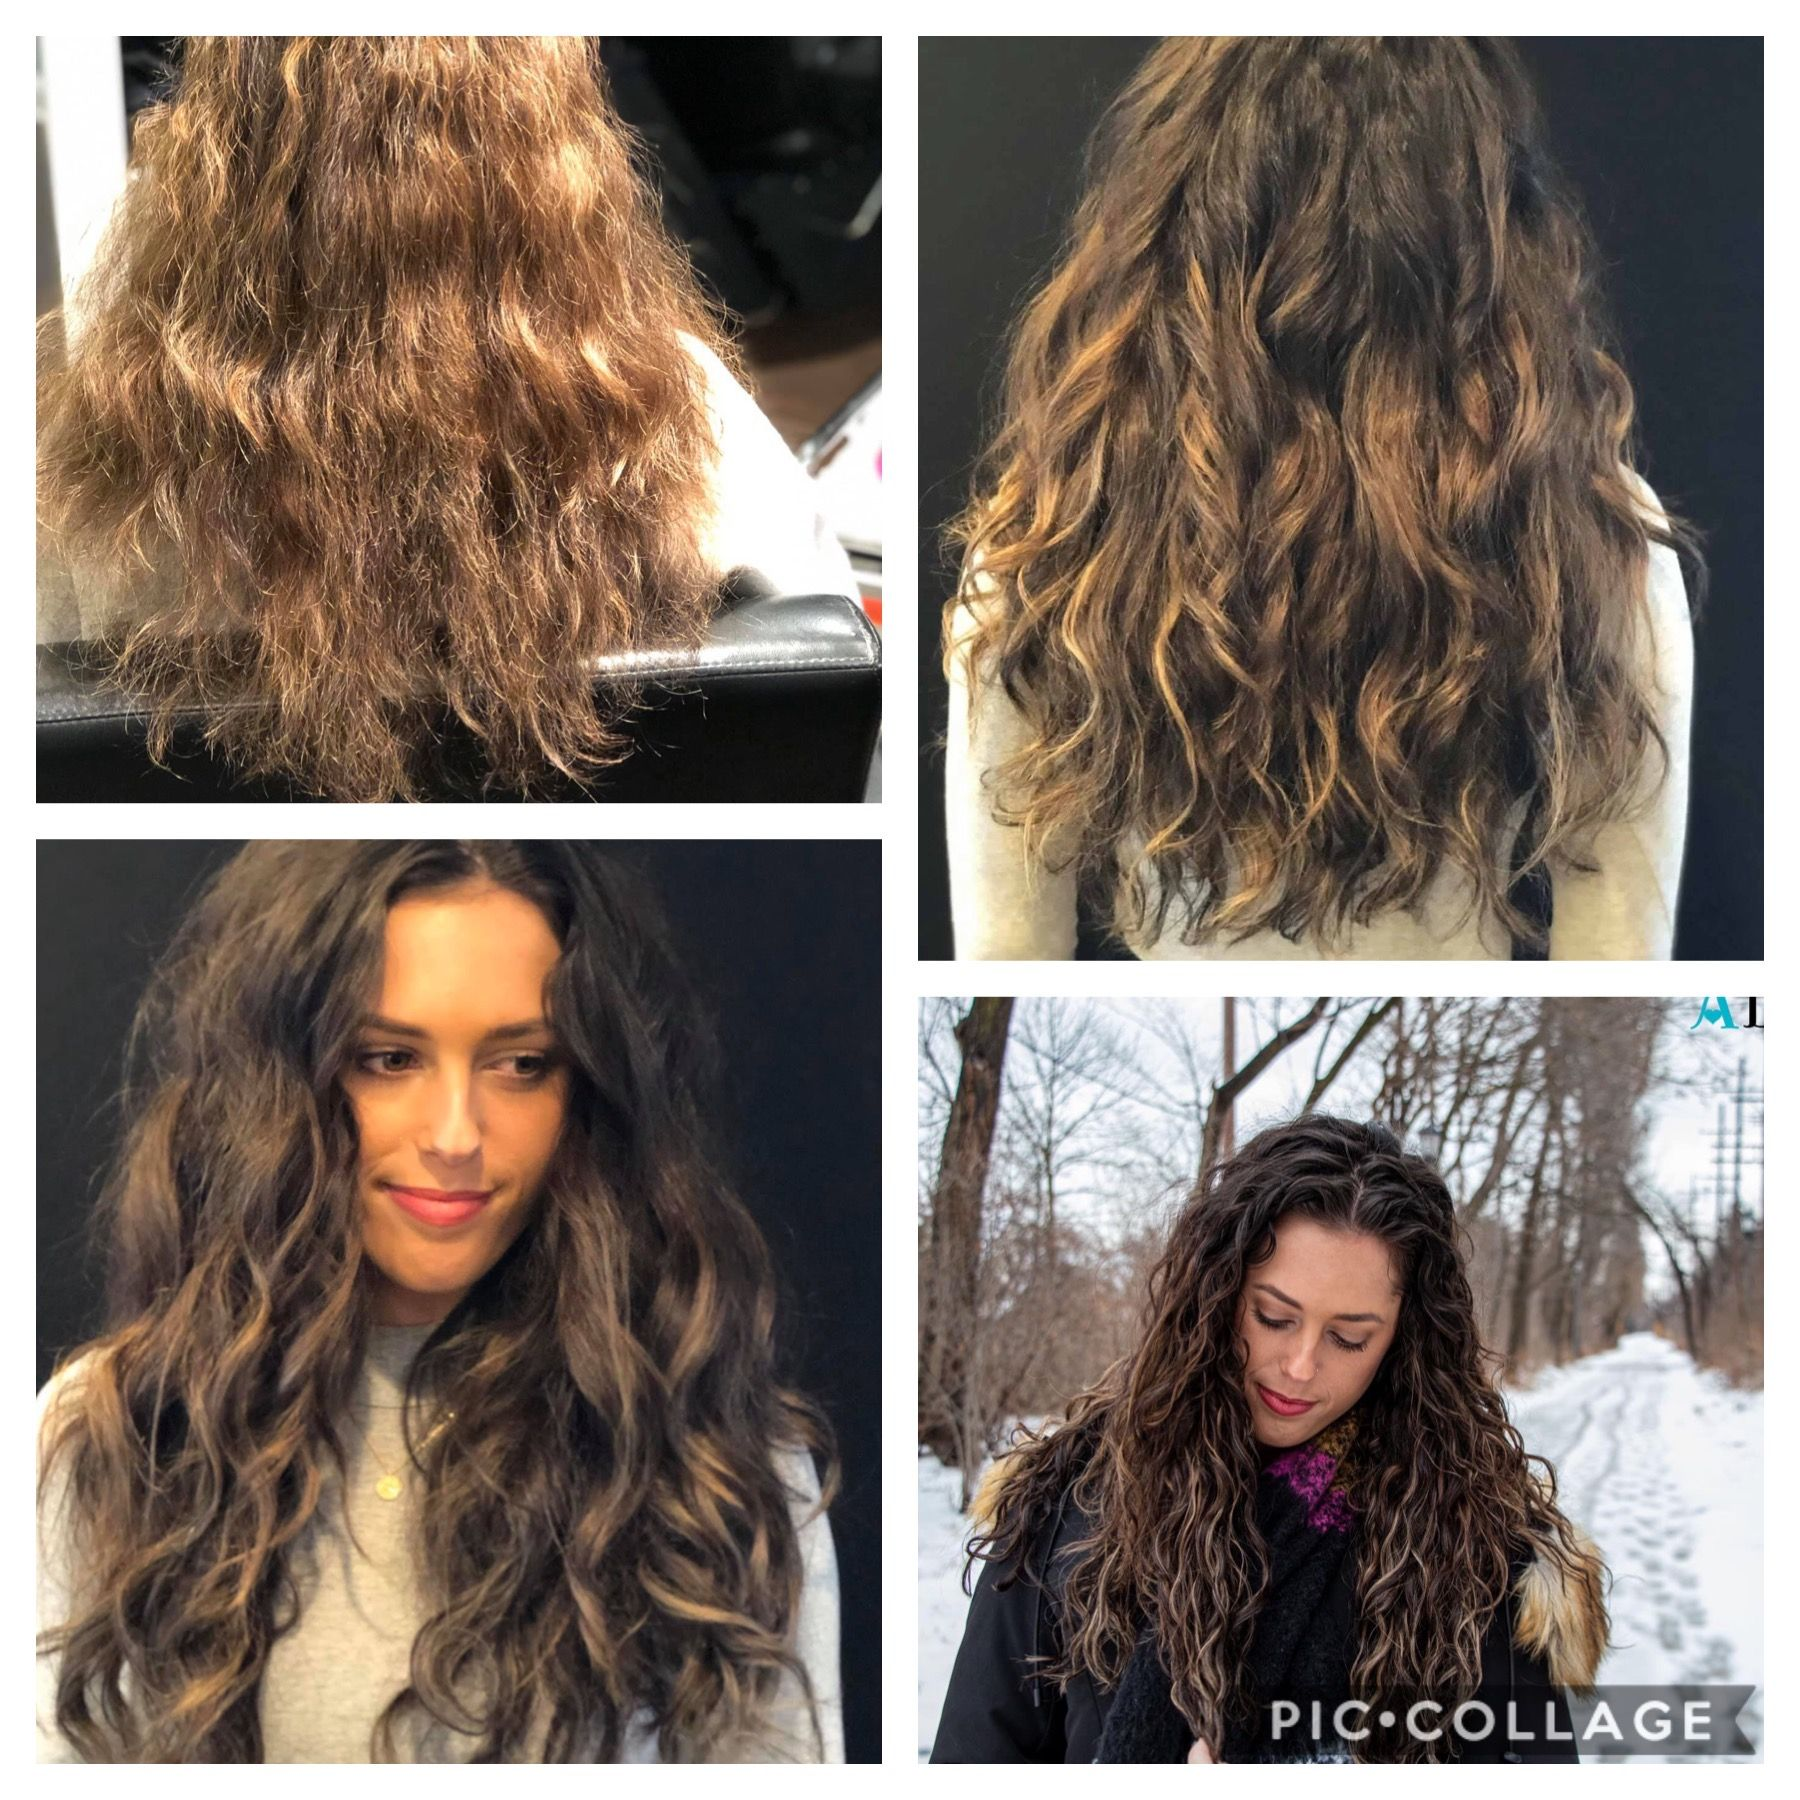 Adored Signature Hand Tied Hair Extensions In 2020 Curly Hair Salon Hair Hair Extensions